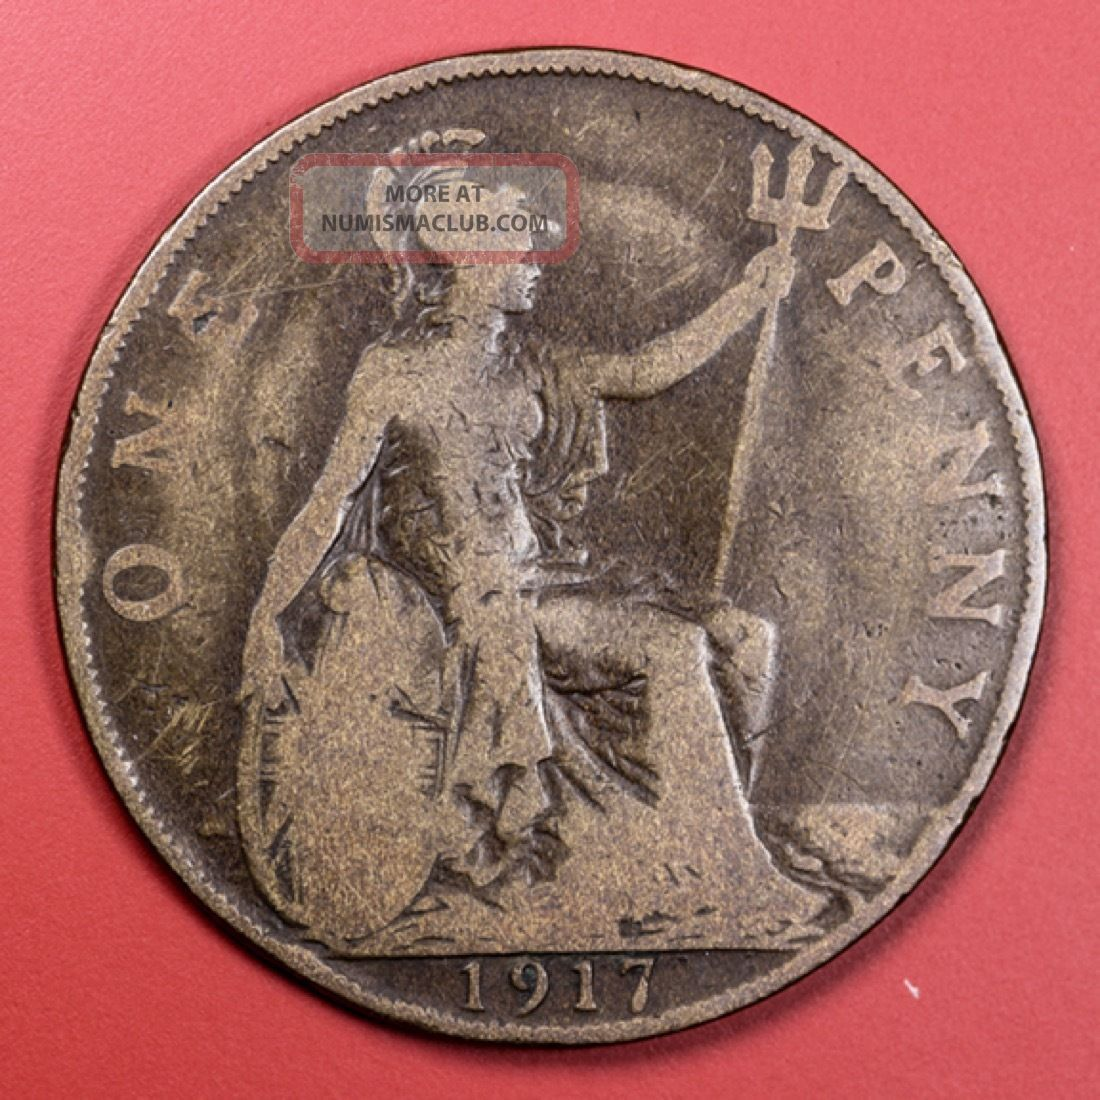 1917 Great Britain One Penny Foreign Coin - S&h UK (Great Britain) photo